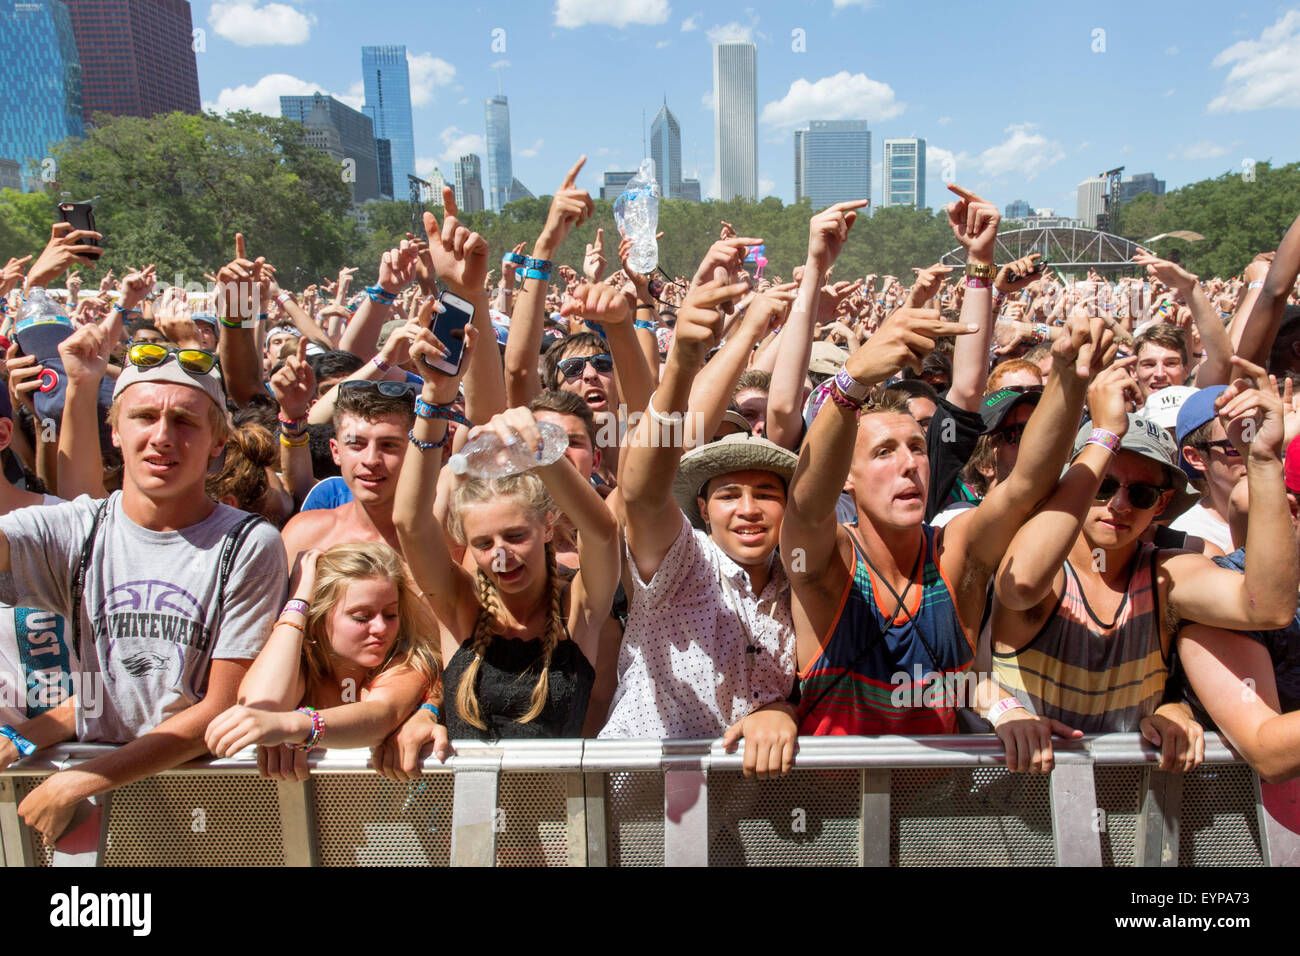 Chicago, Illinois, USA. 1st Aug, 2015. Fans enjoy Travis Scott at Perry's Stage at Grant Park during the Lollapalooza - Stock Image